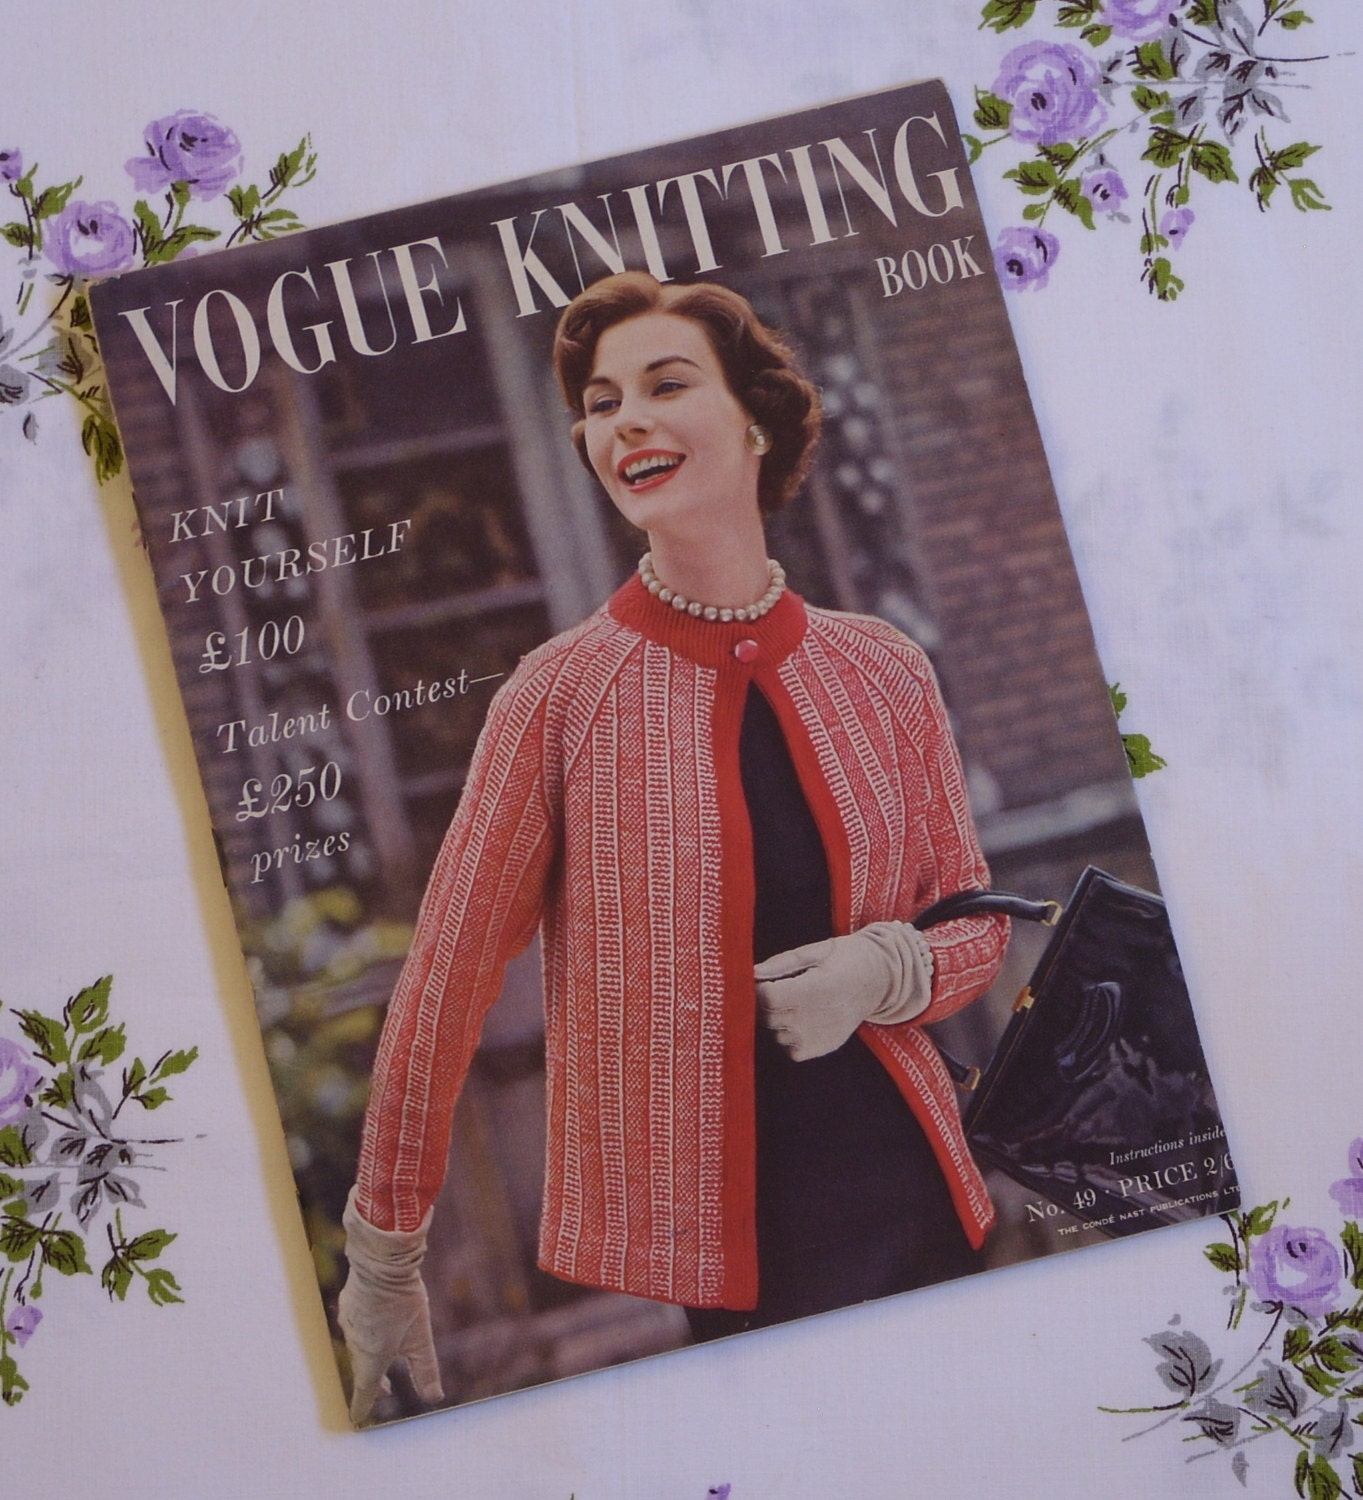 Vintage Vogue Knitting Pattern Books : Vintage VOGUE Knitting Book / 1950s Knitting Patterns / 50s